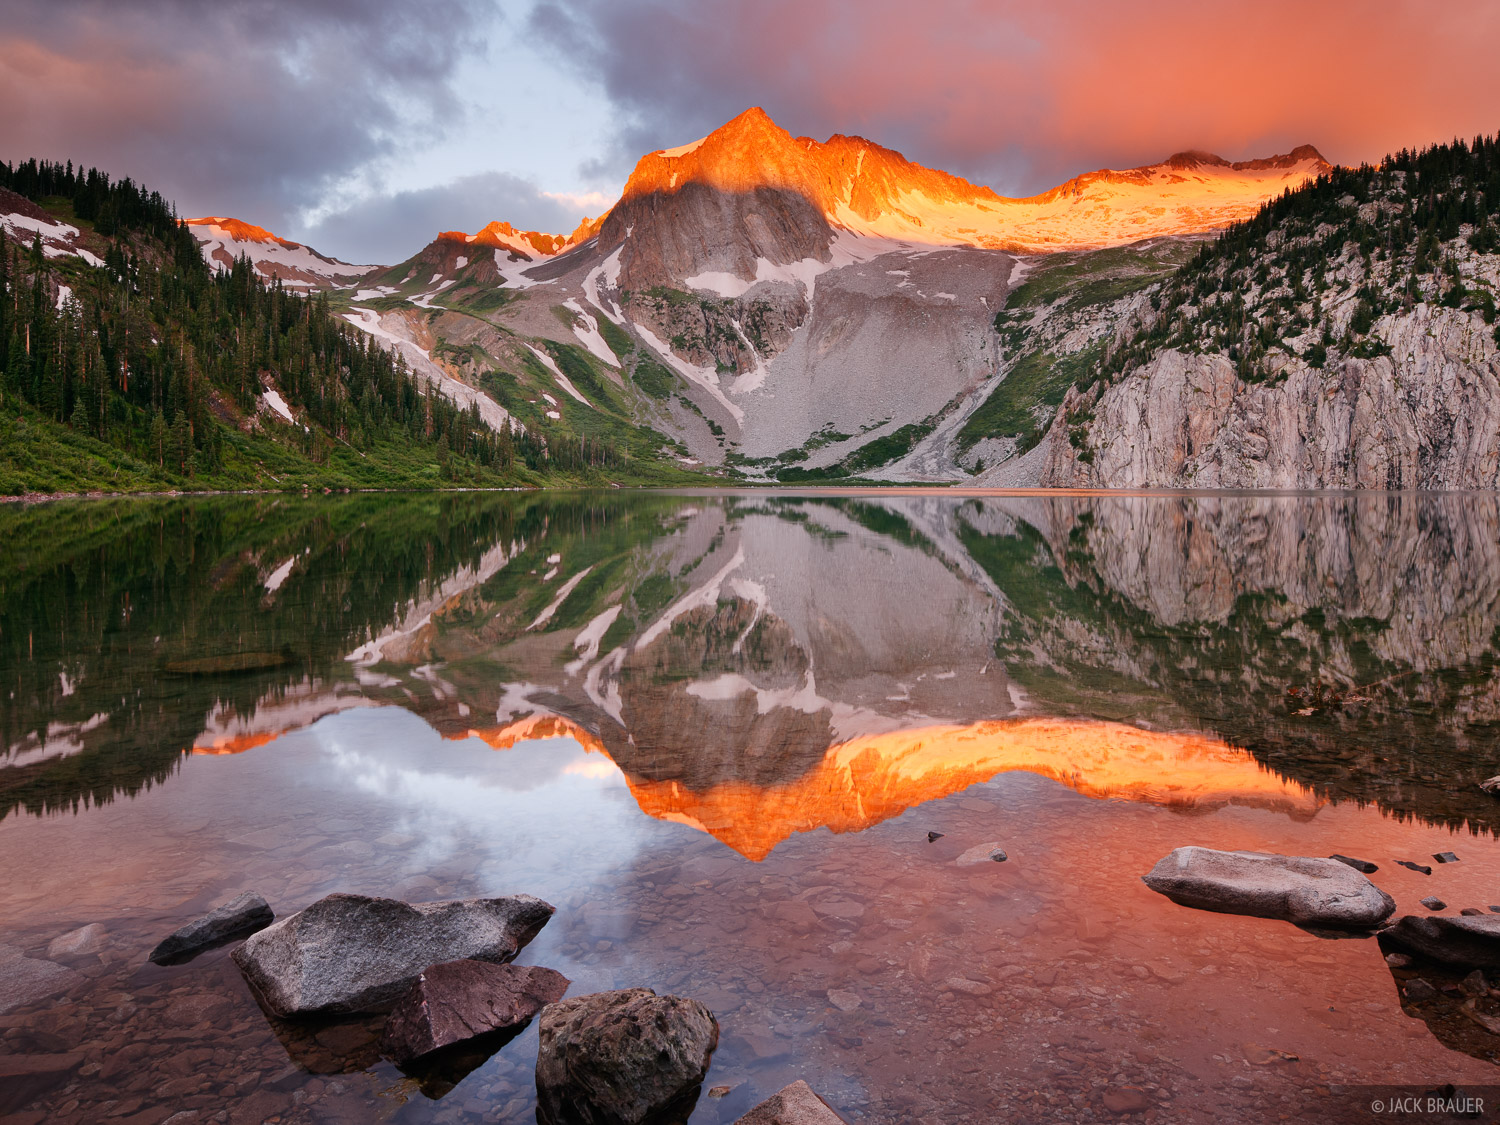 Colorado, Elk Mountains, Snowmass, Maroon Bells-Snowmass Wilderness, photo